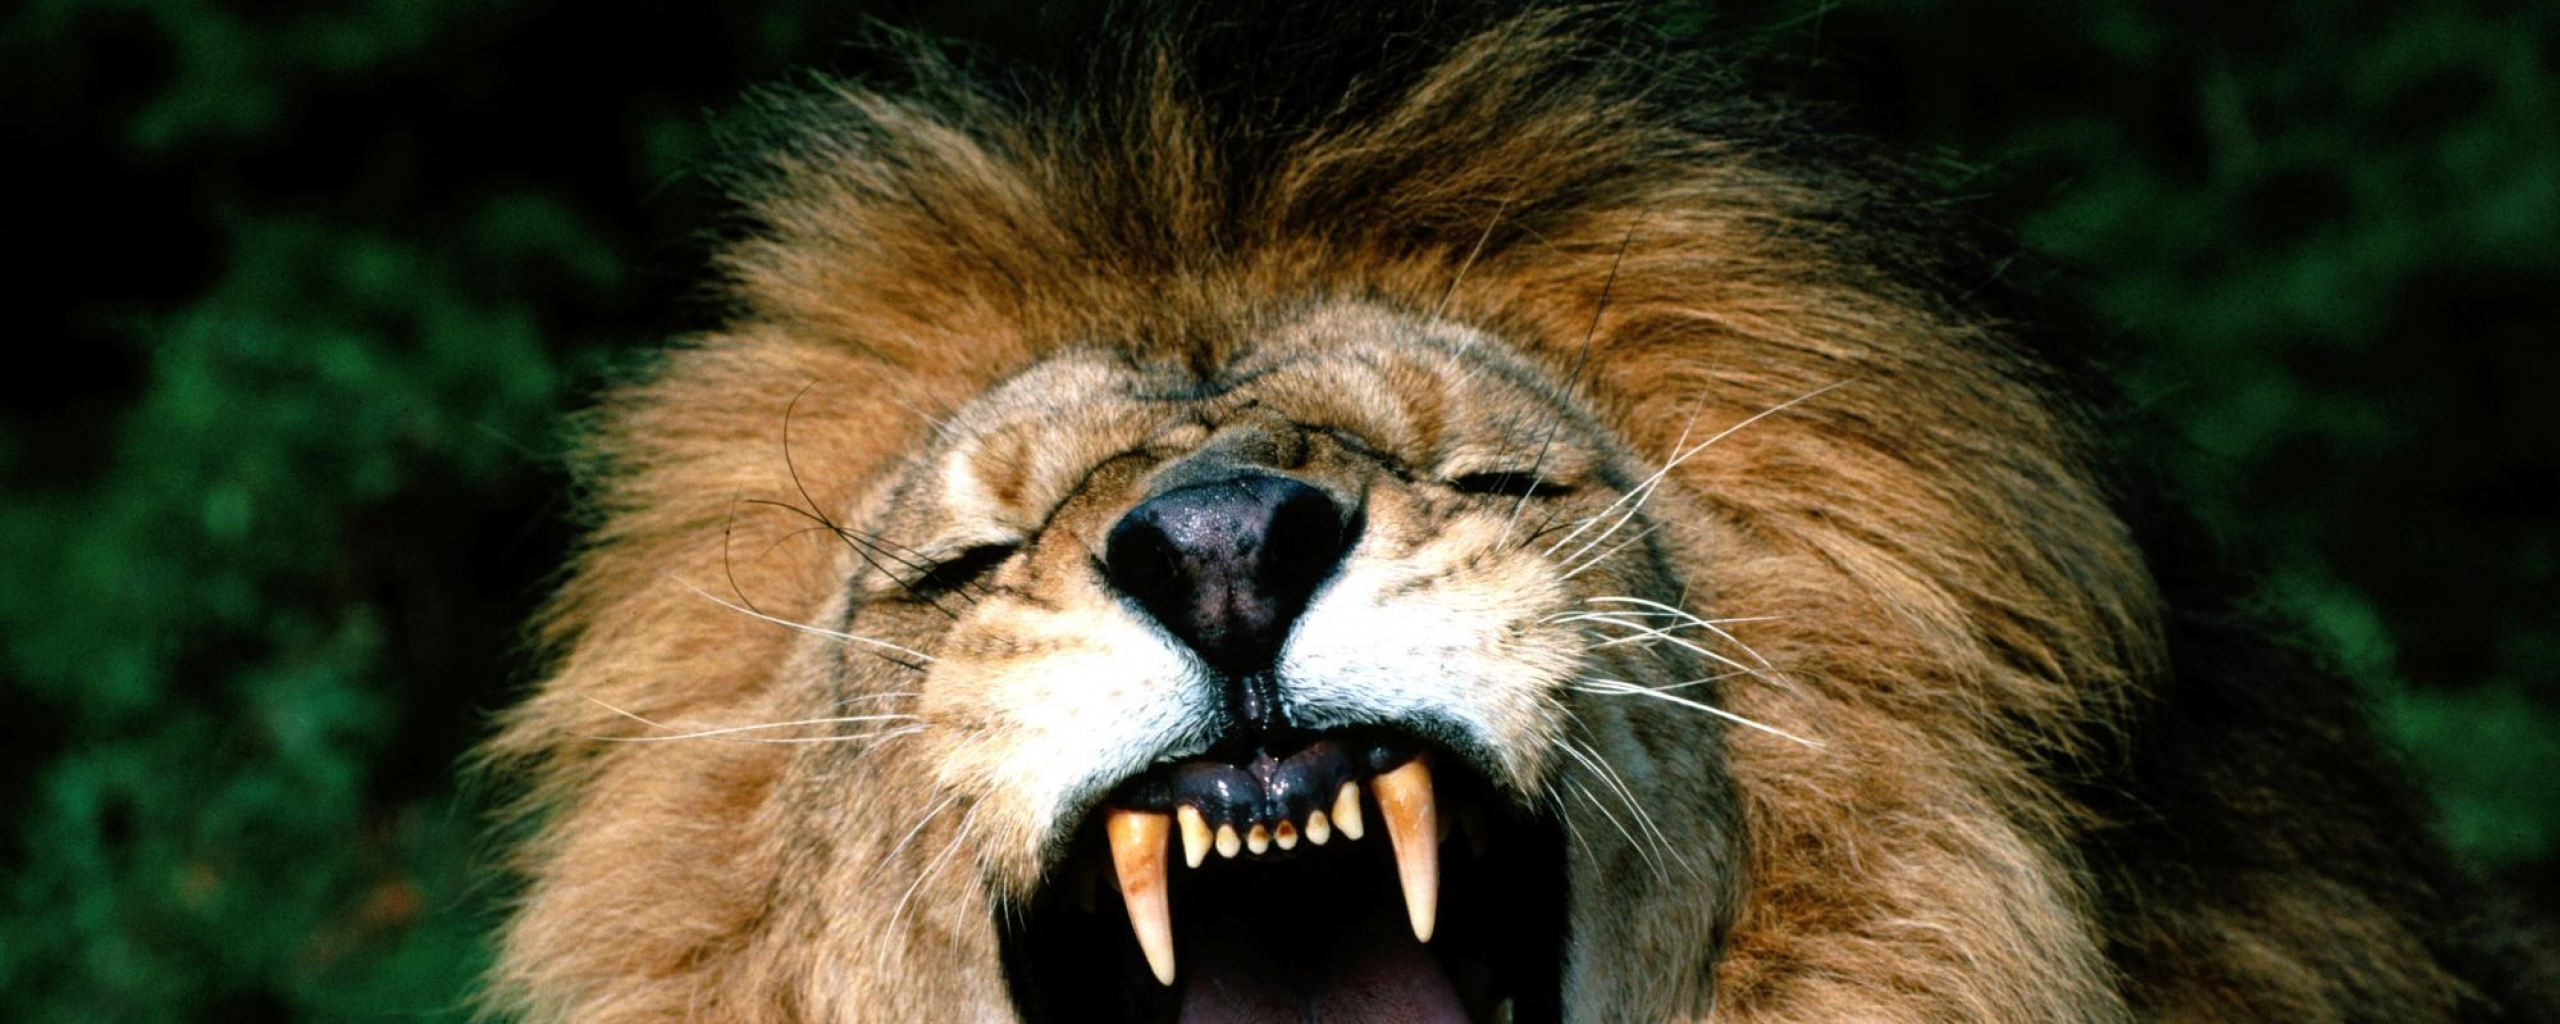 Samsung Galaxy S3 Wallpaper Quotes Download Angry Lion Face Wallpaper Gallery